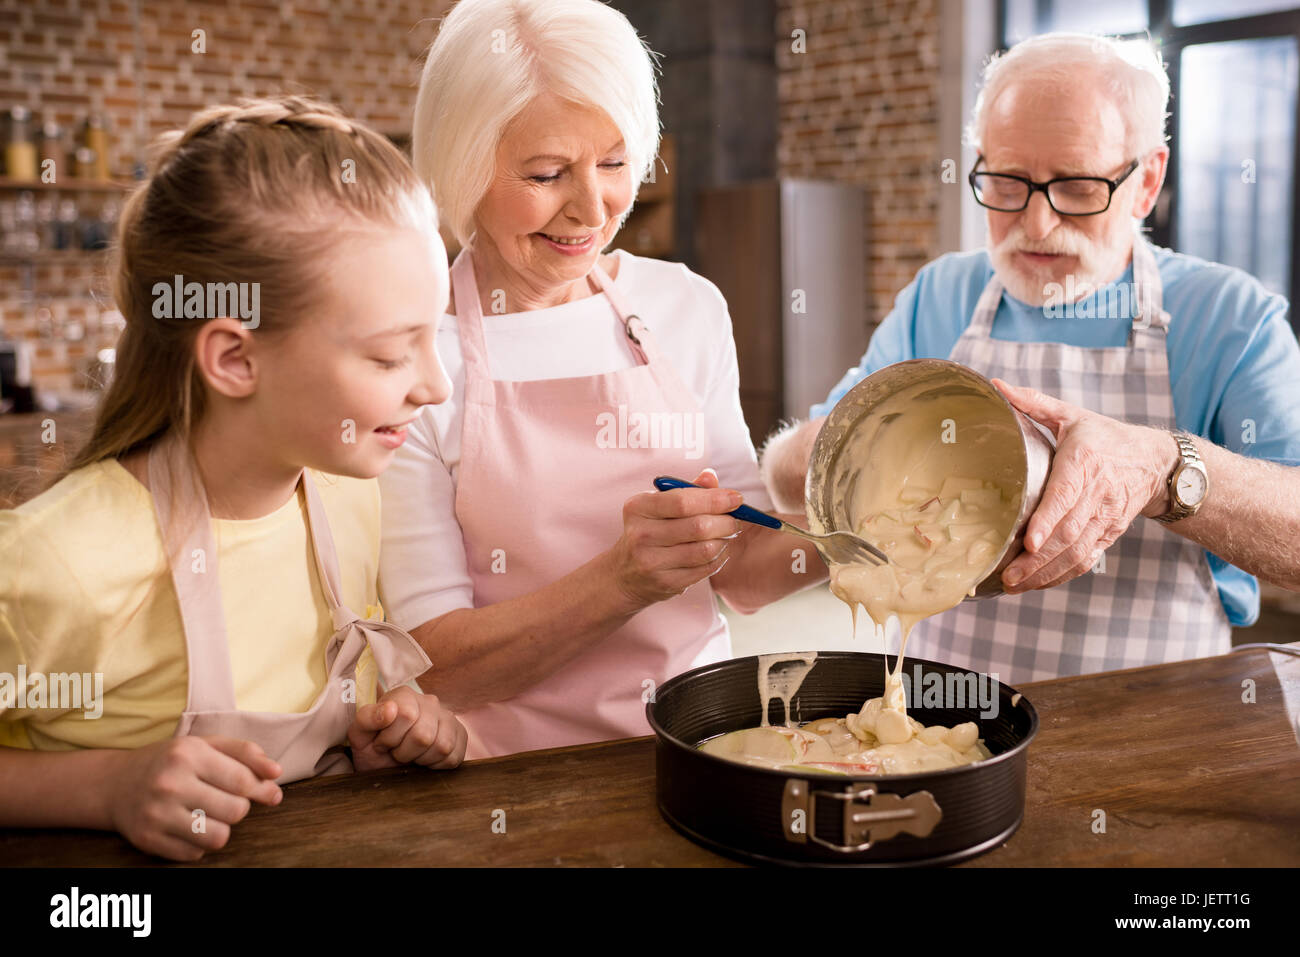 happy grandparents and girl cooking together at home - Stock Image